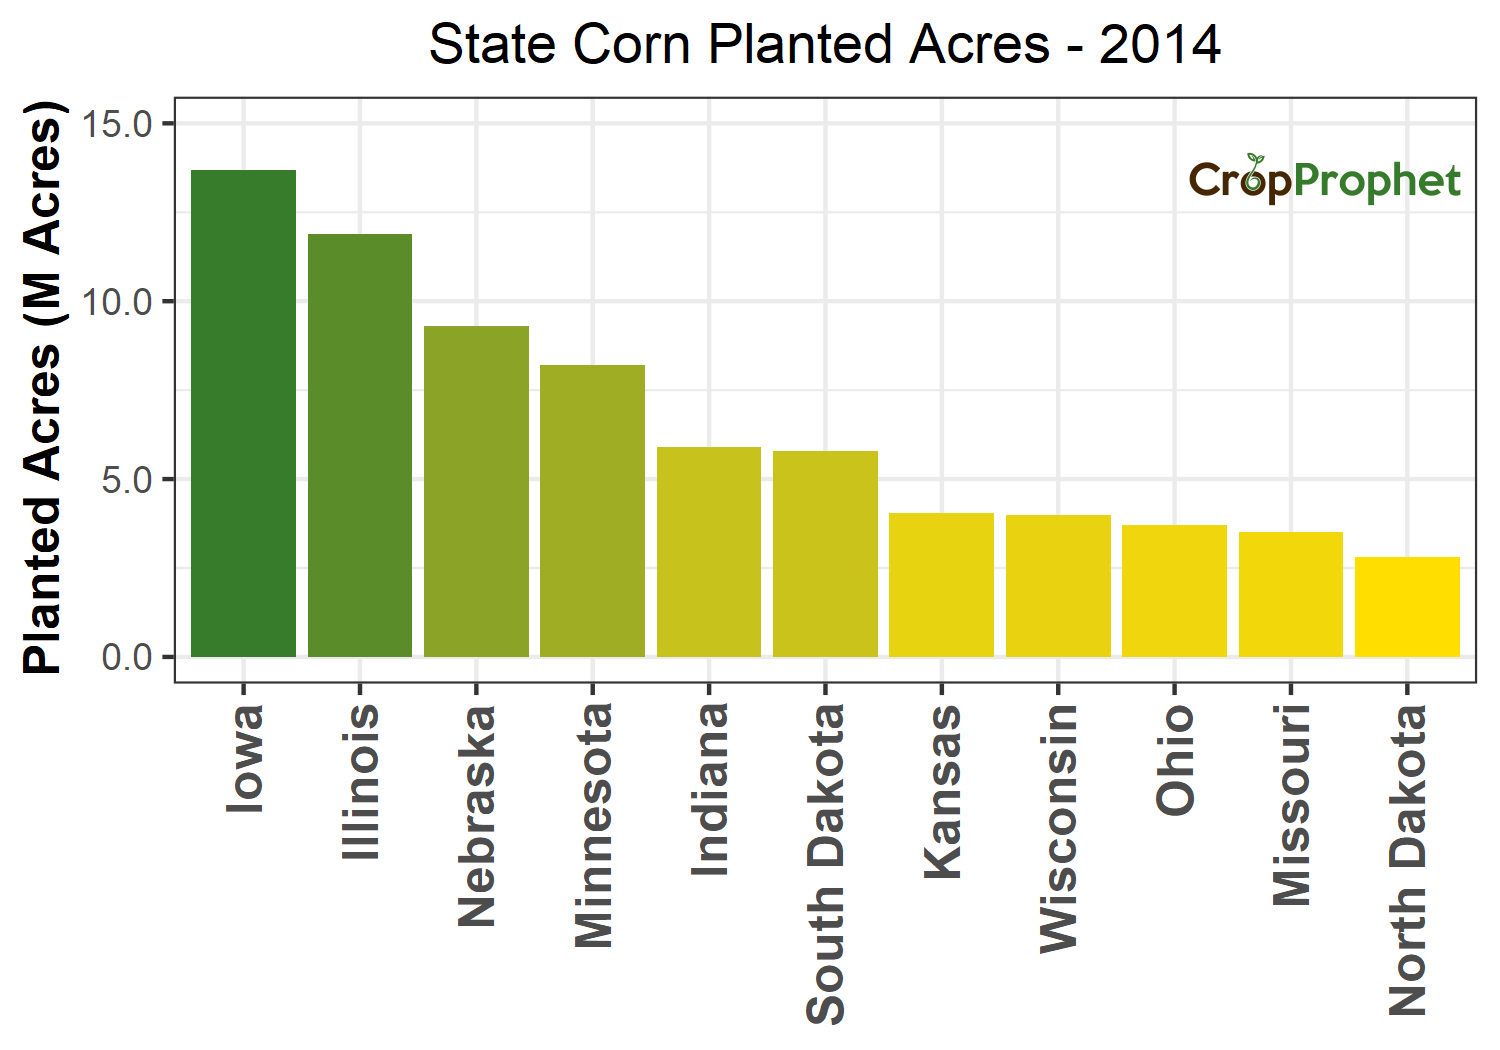 Corn Production by State - 2014 Rankings